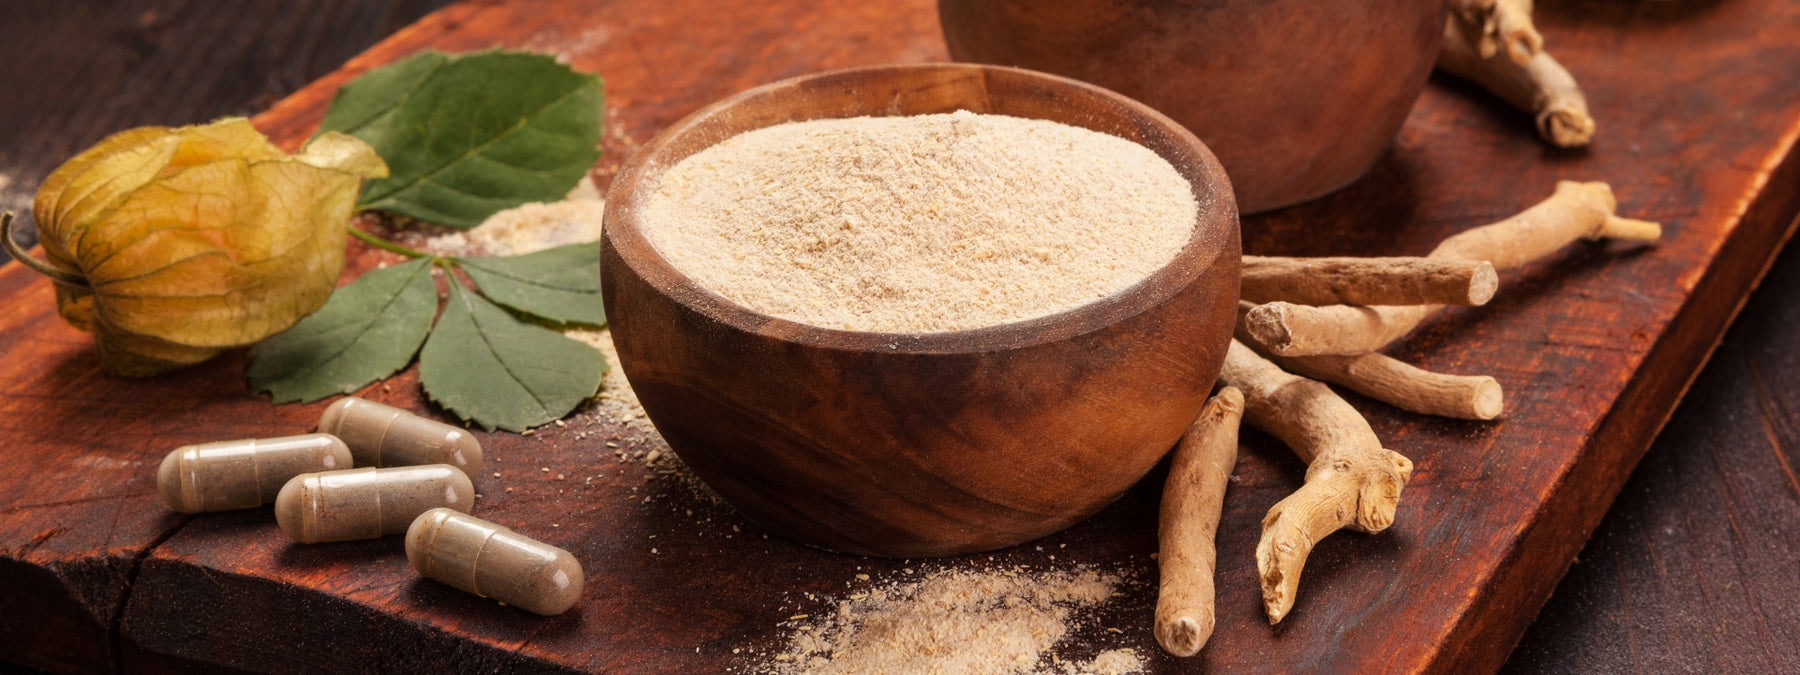 11 Proven Ashwagandha Benefits for Men